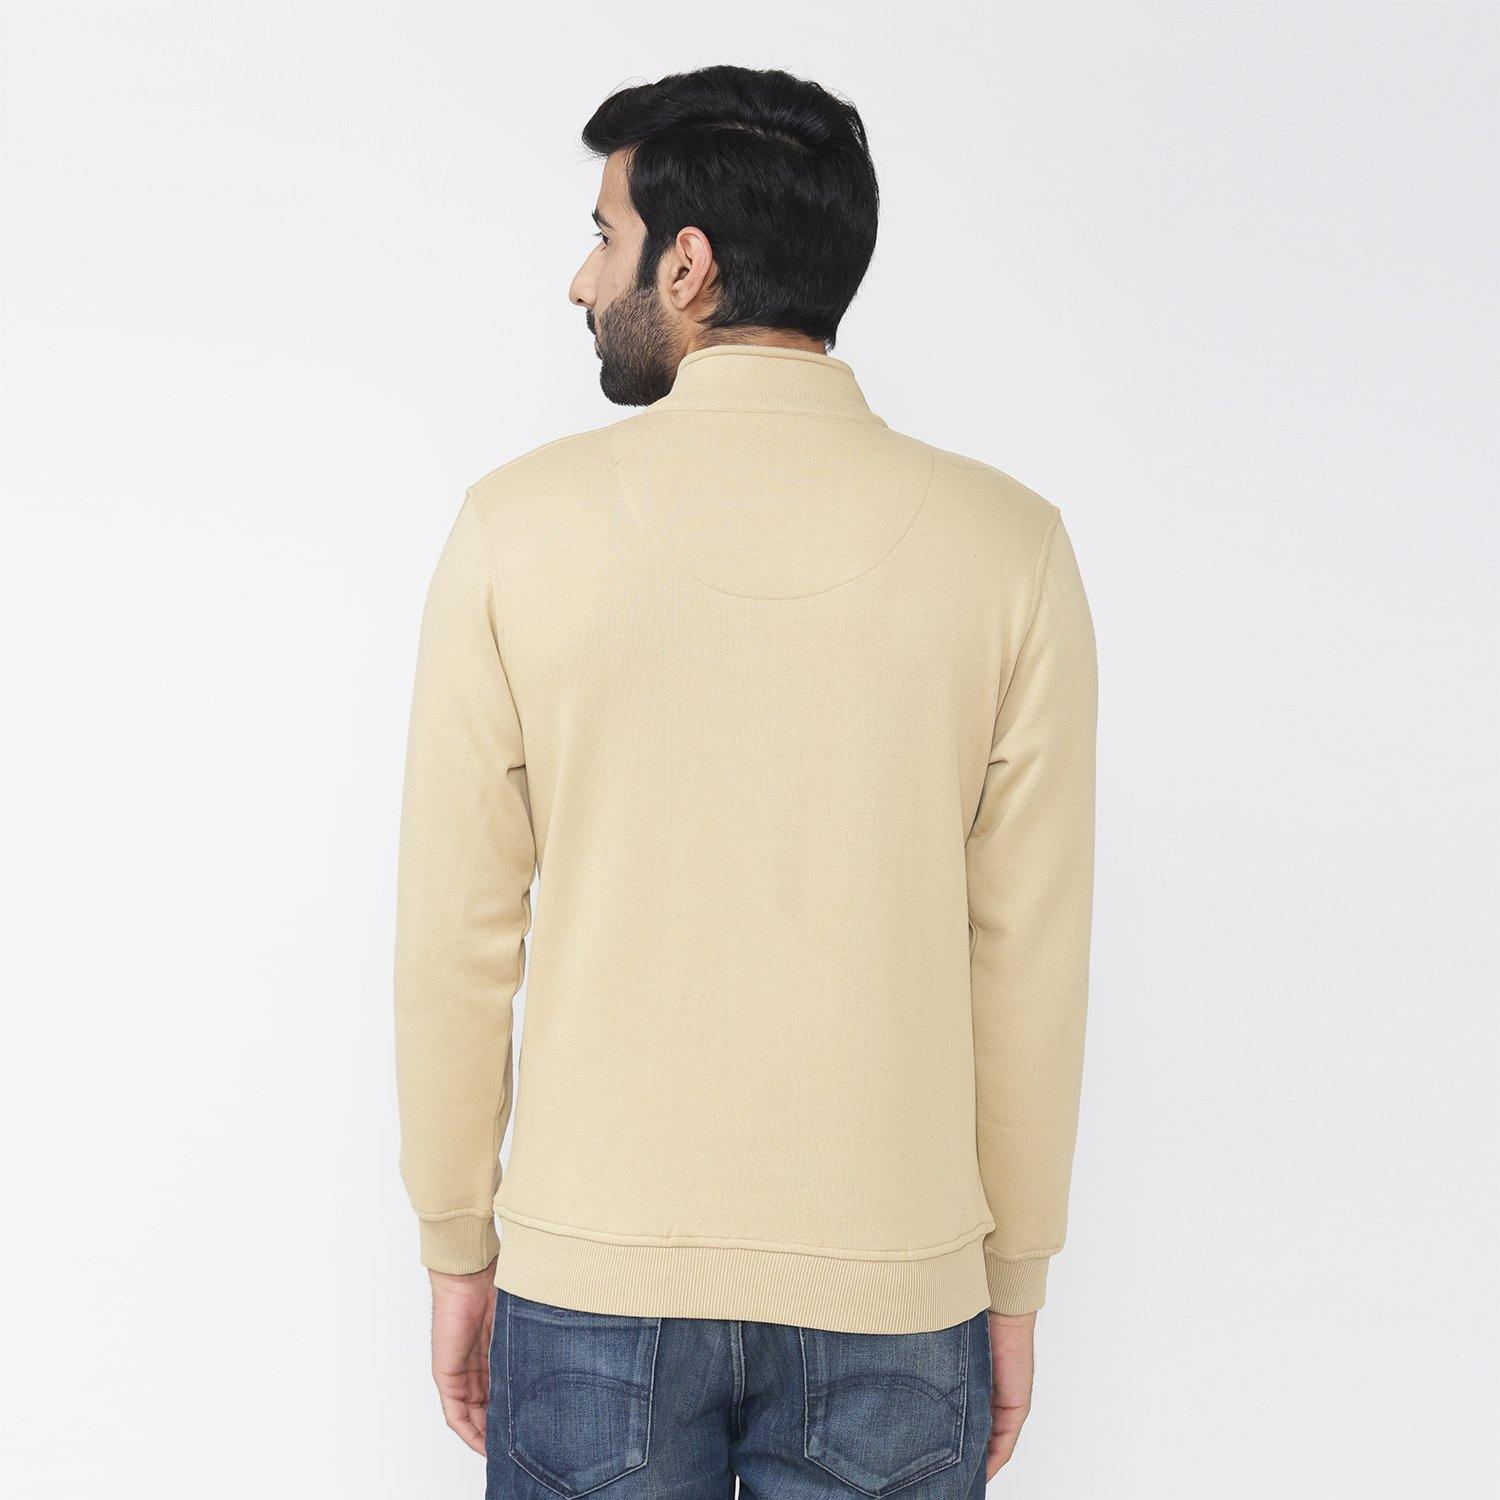 Men's Winter Wear Full Sleeve Plain Jacket - Beige